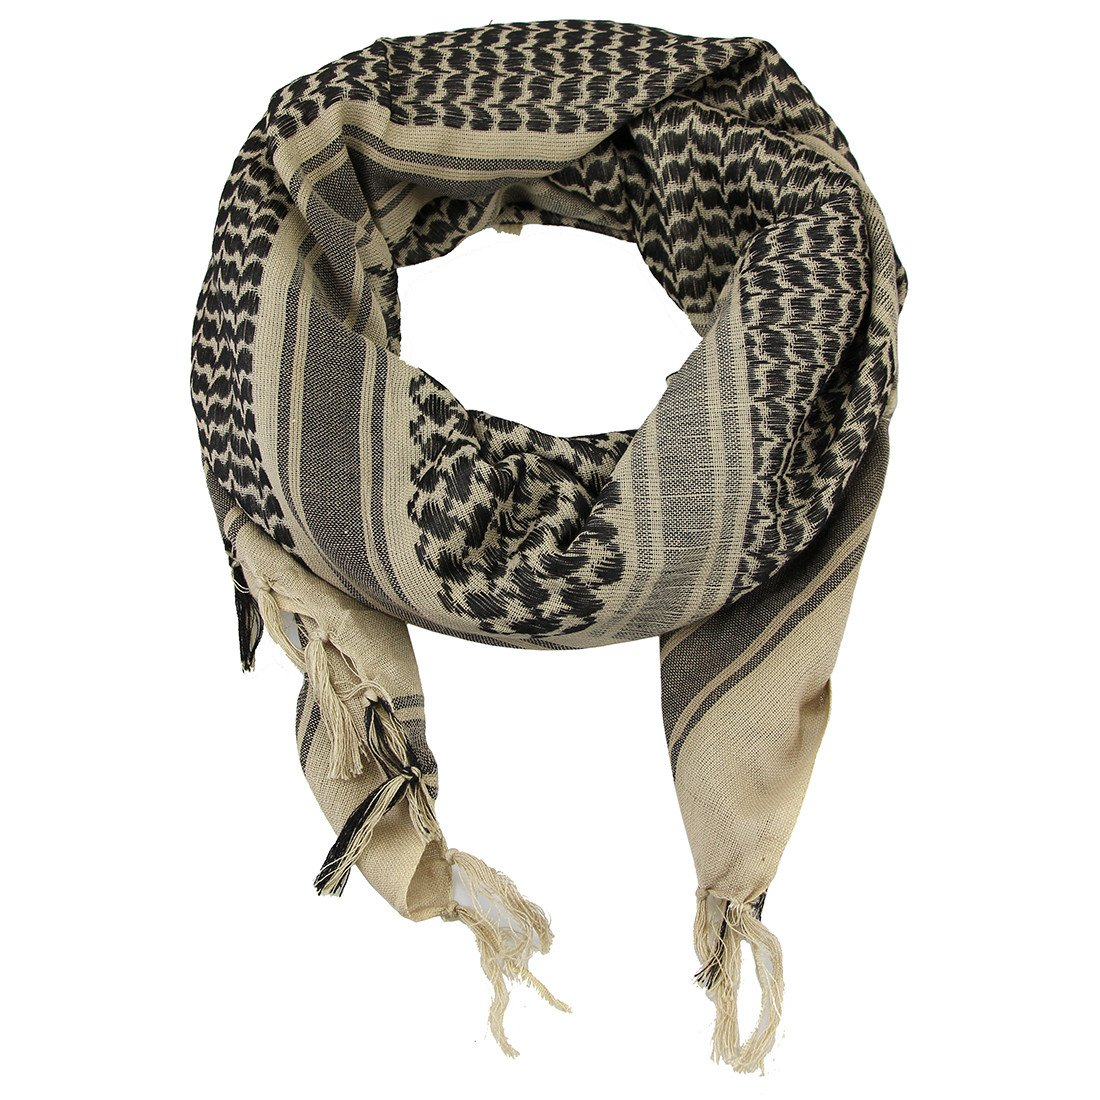 100% Cotton Tactical Shemagh Military Desert Shawl Head Neck Scarf Wrap For Men Women, Beige, One Size